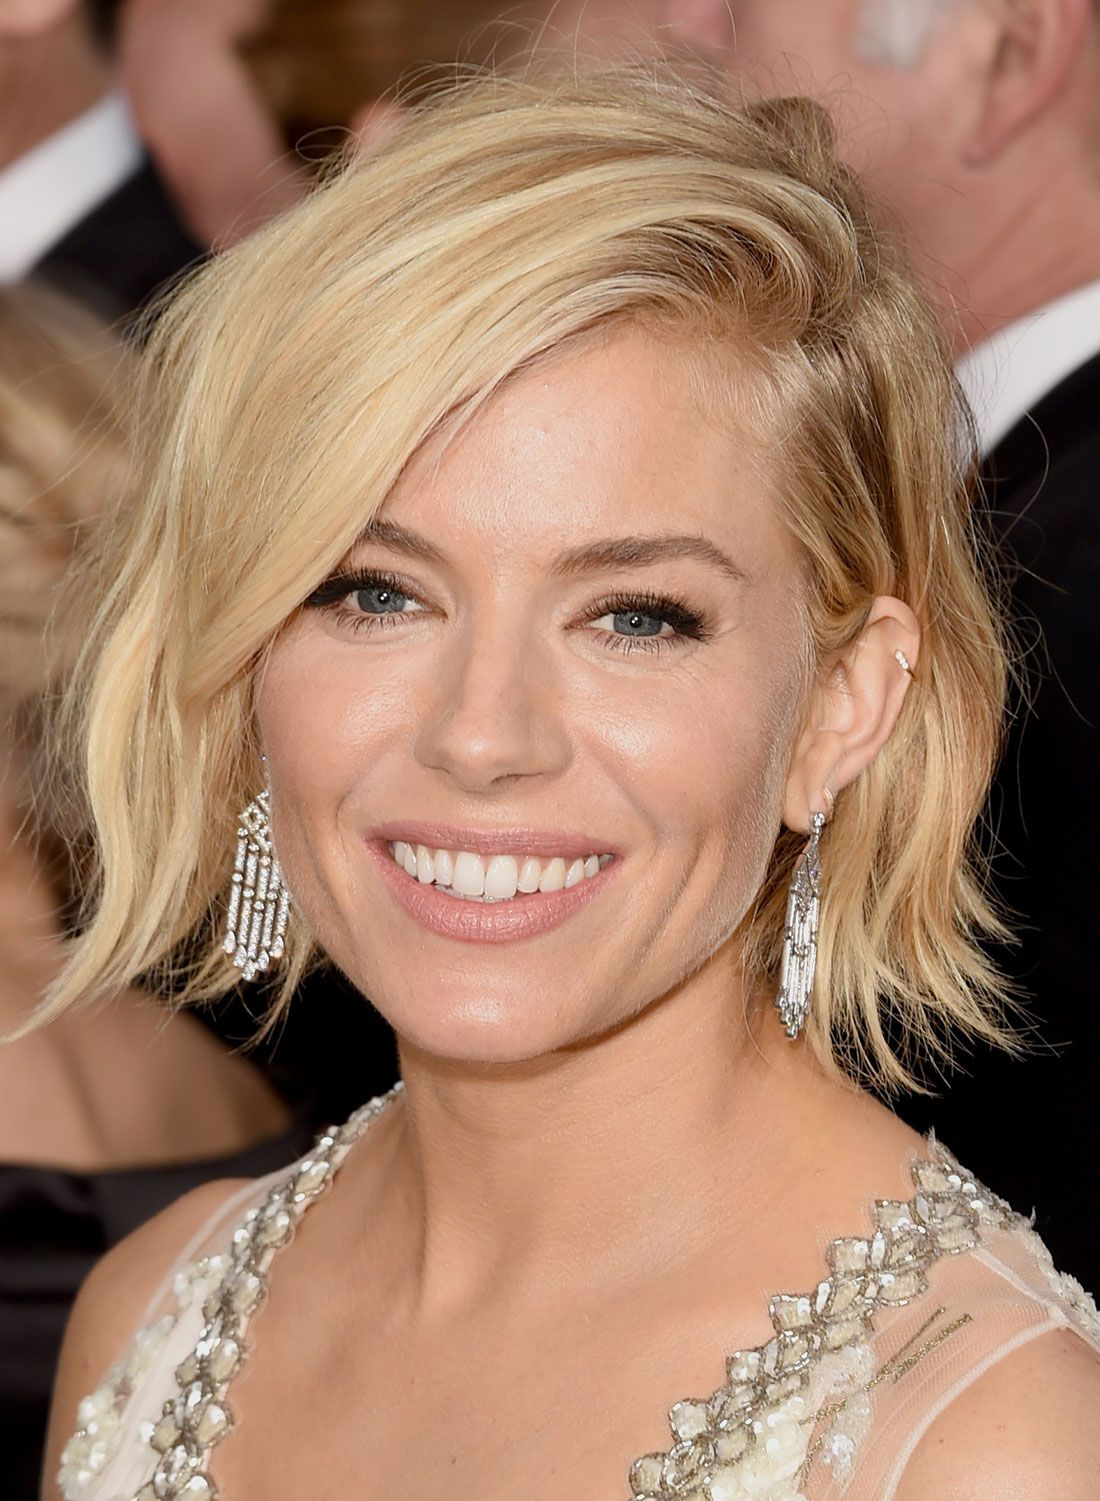 New Celeb Hair Trend: 10 Short Hairstyles from the Red Carpet